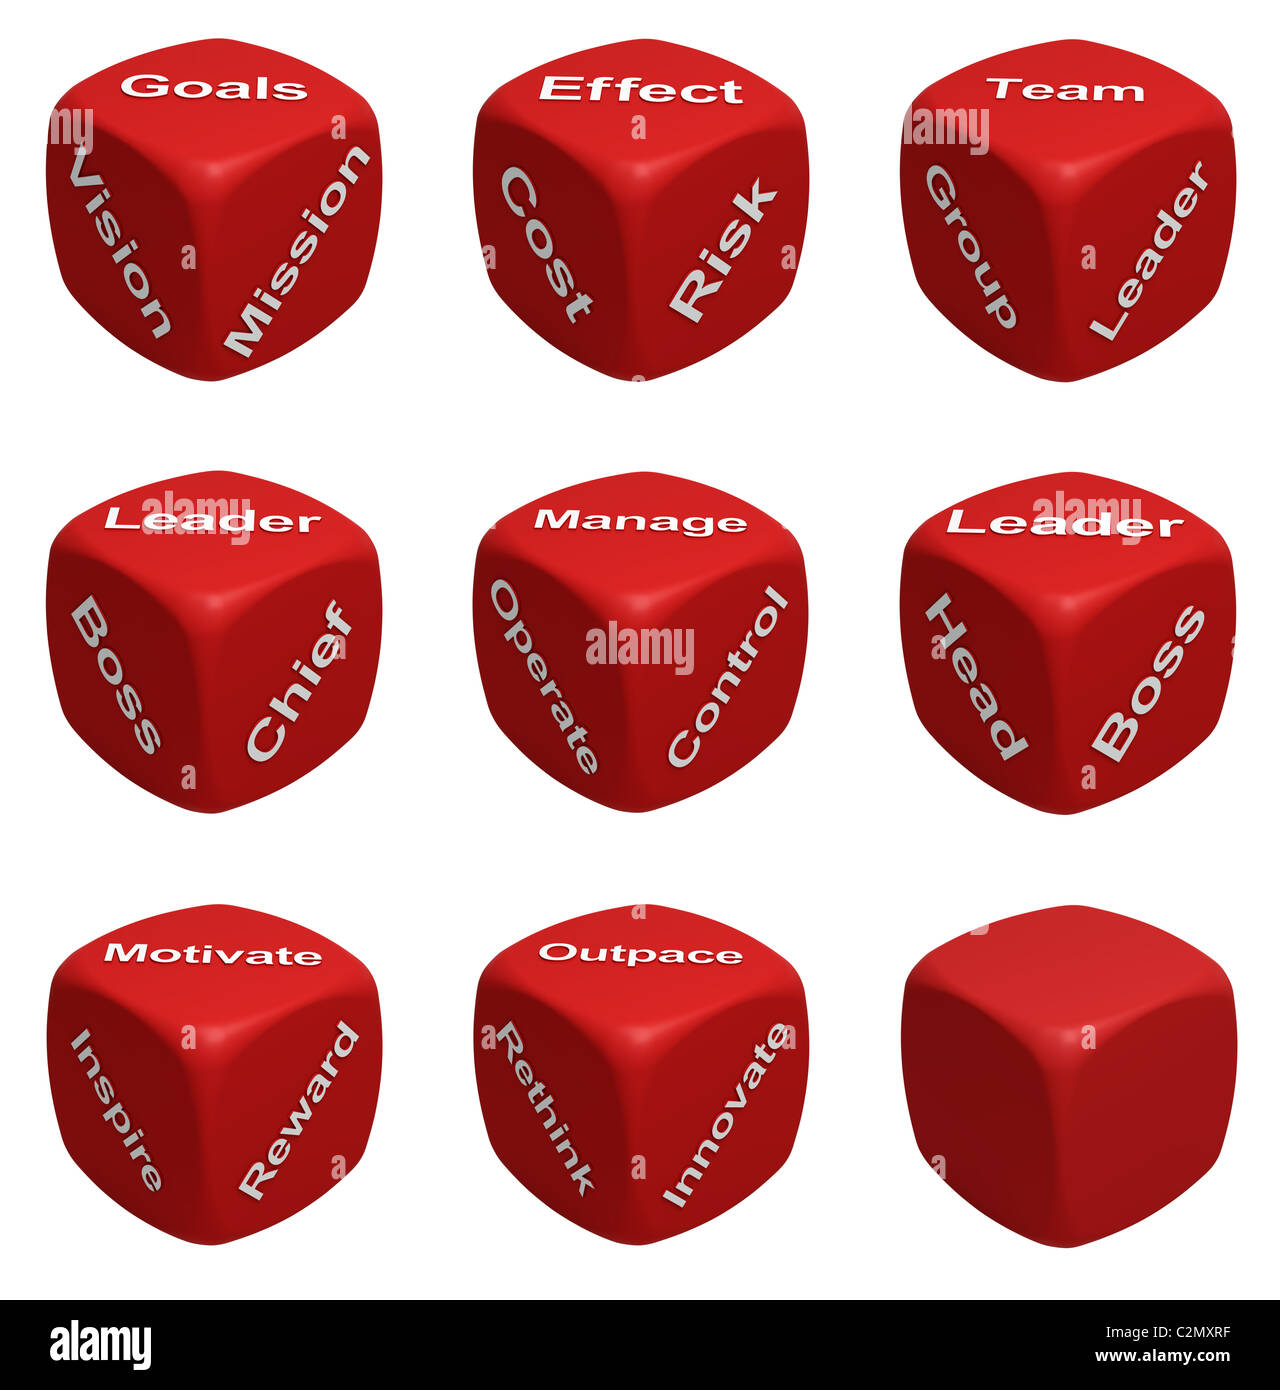 Red Dice Collection with words devoted to Management - Stock Image